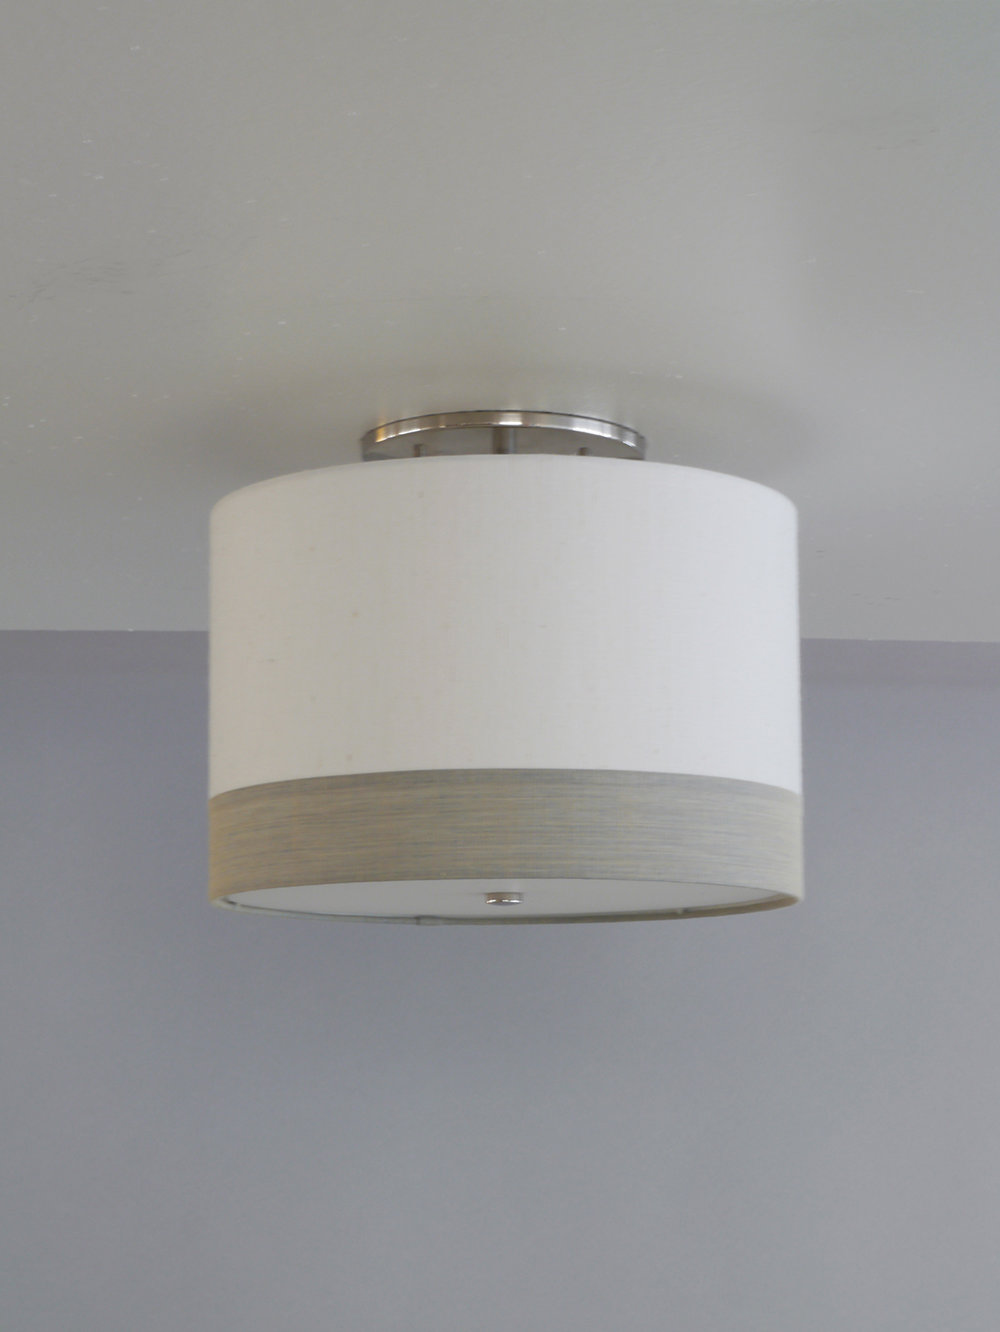 Drums and Boxes_C-198_Ceiling Mounted Striped Drum_Polished Nickel_White with Gray.jpg